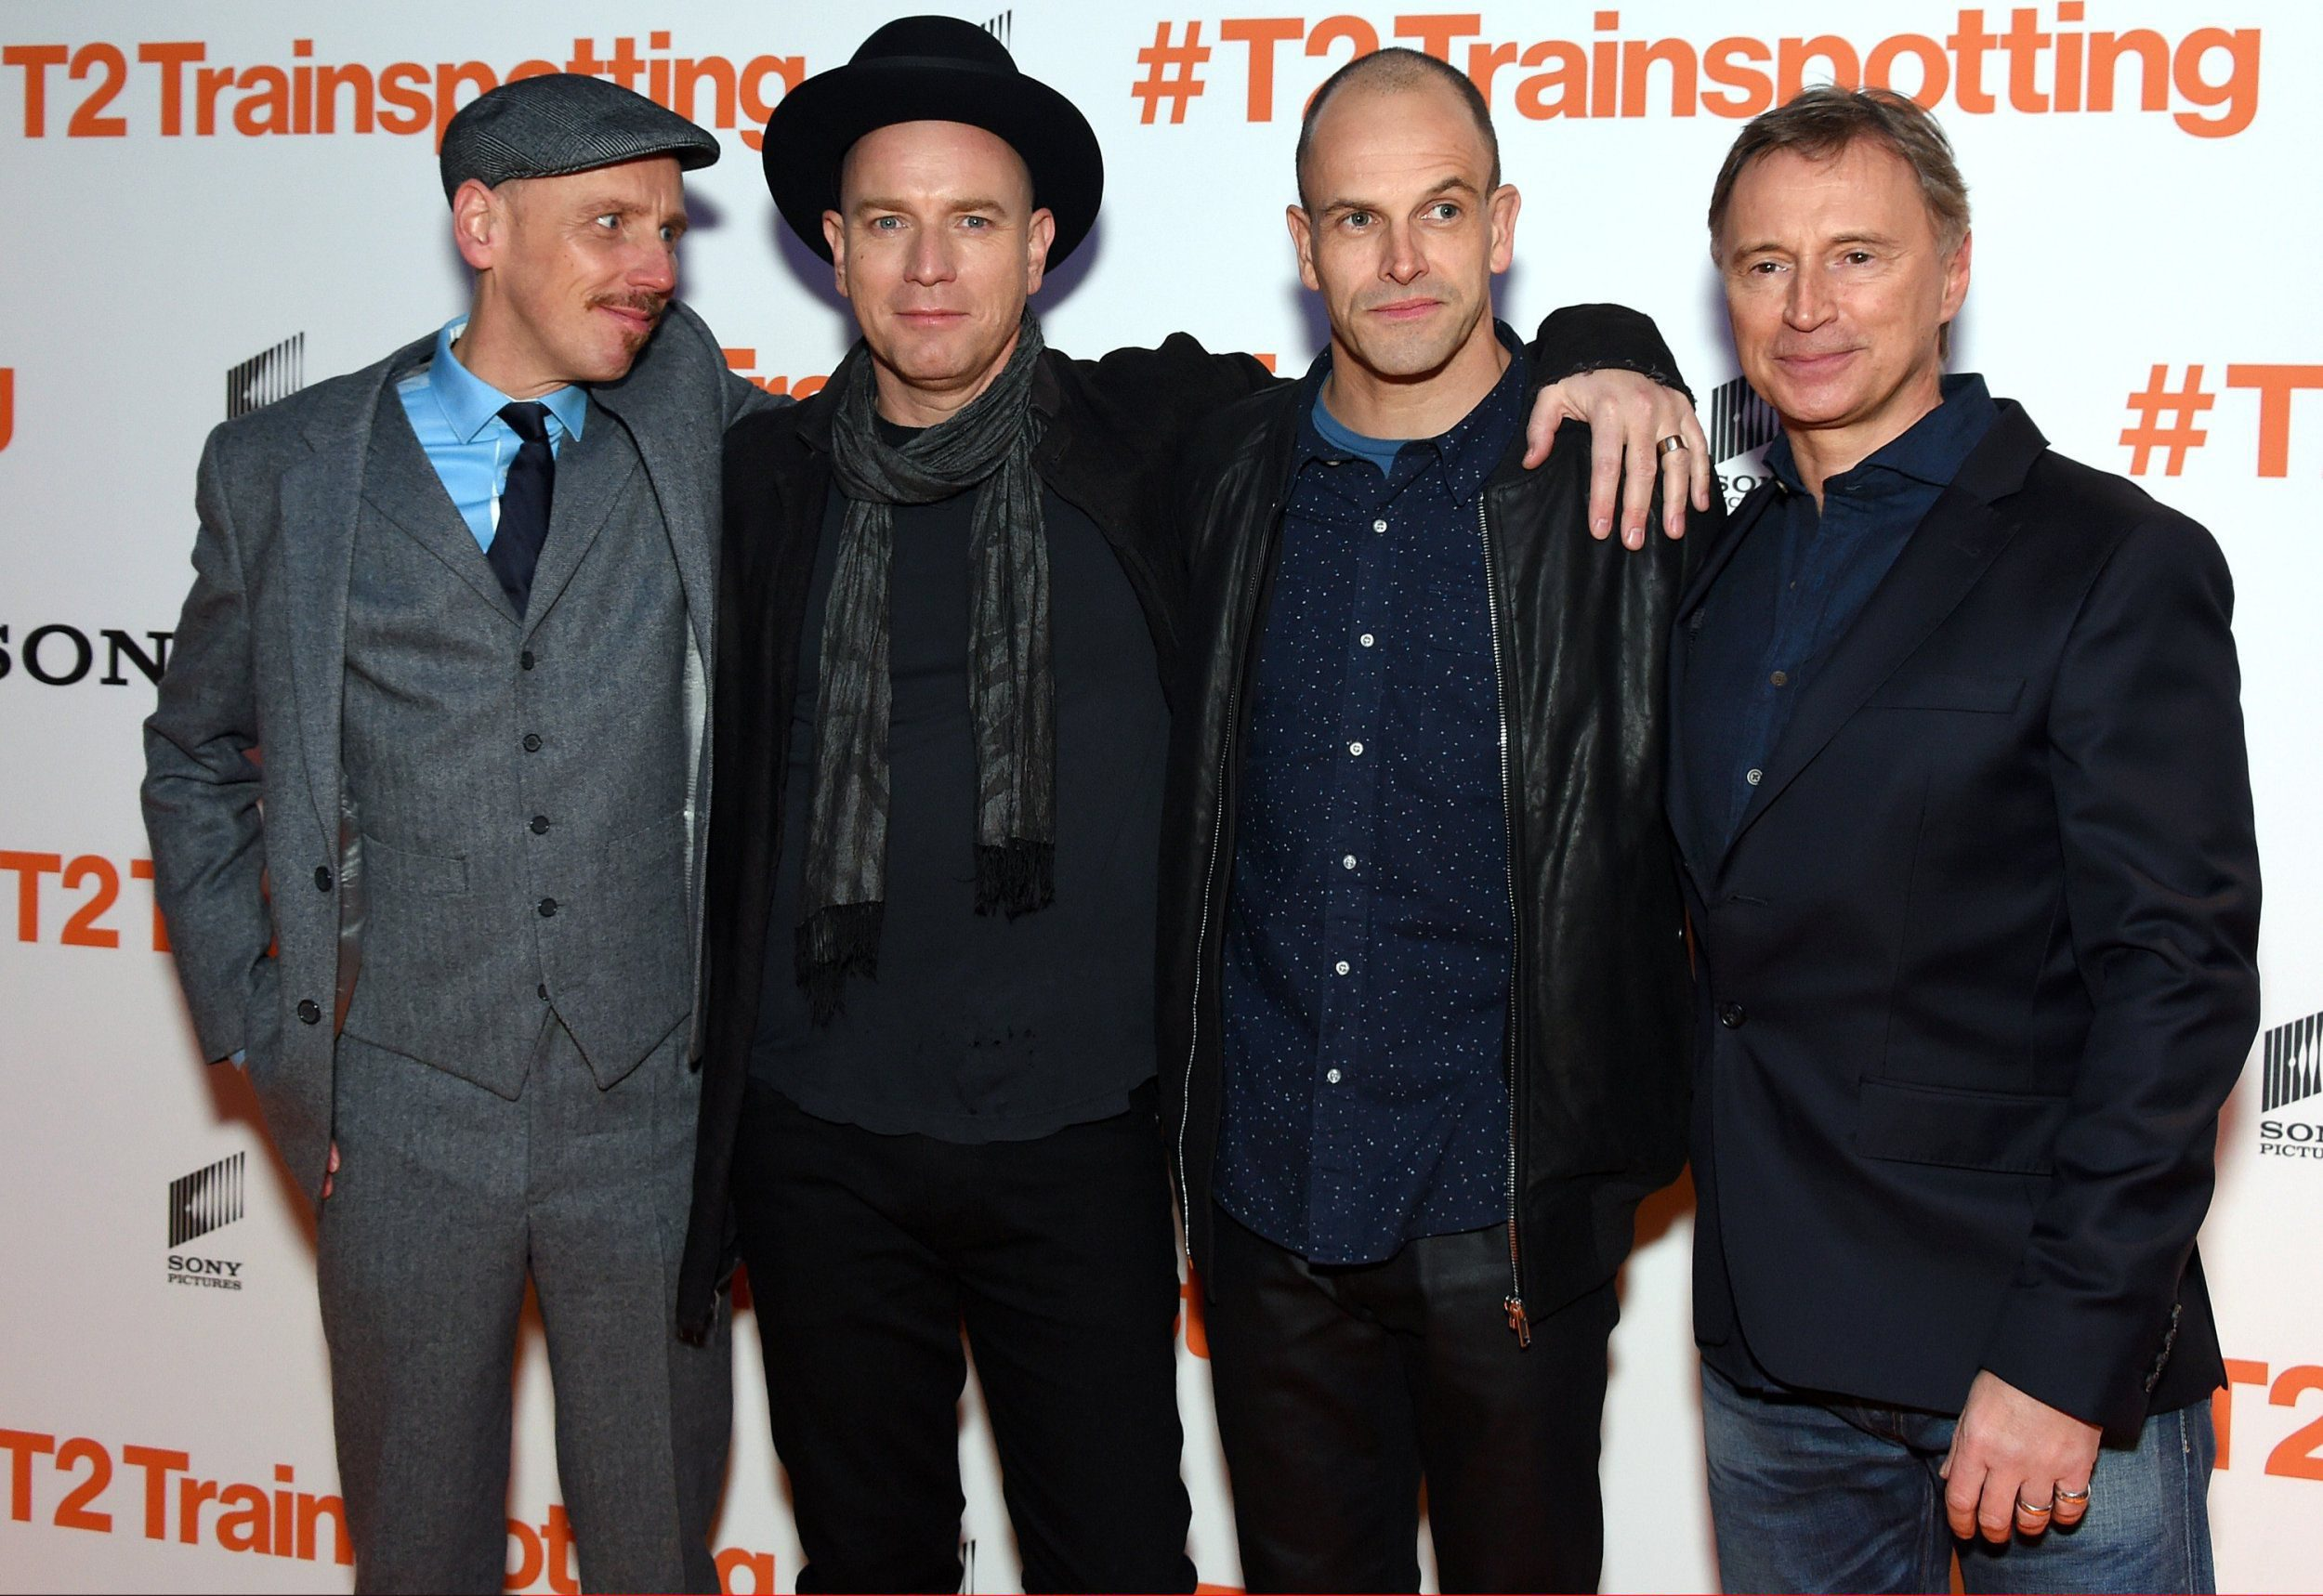 Danny Boyle says he could have made T2 Trainspotting 10 years ago for 'wrong reasons' as he addresses Brexti parallels in 2017 sequel